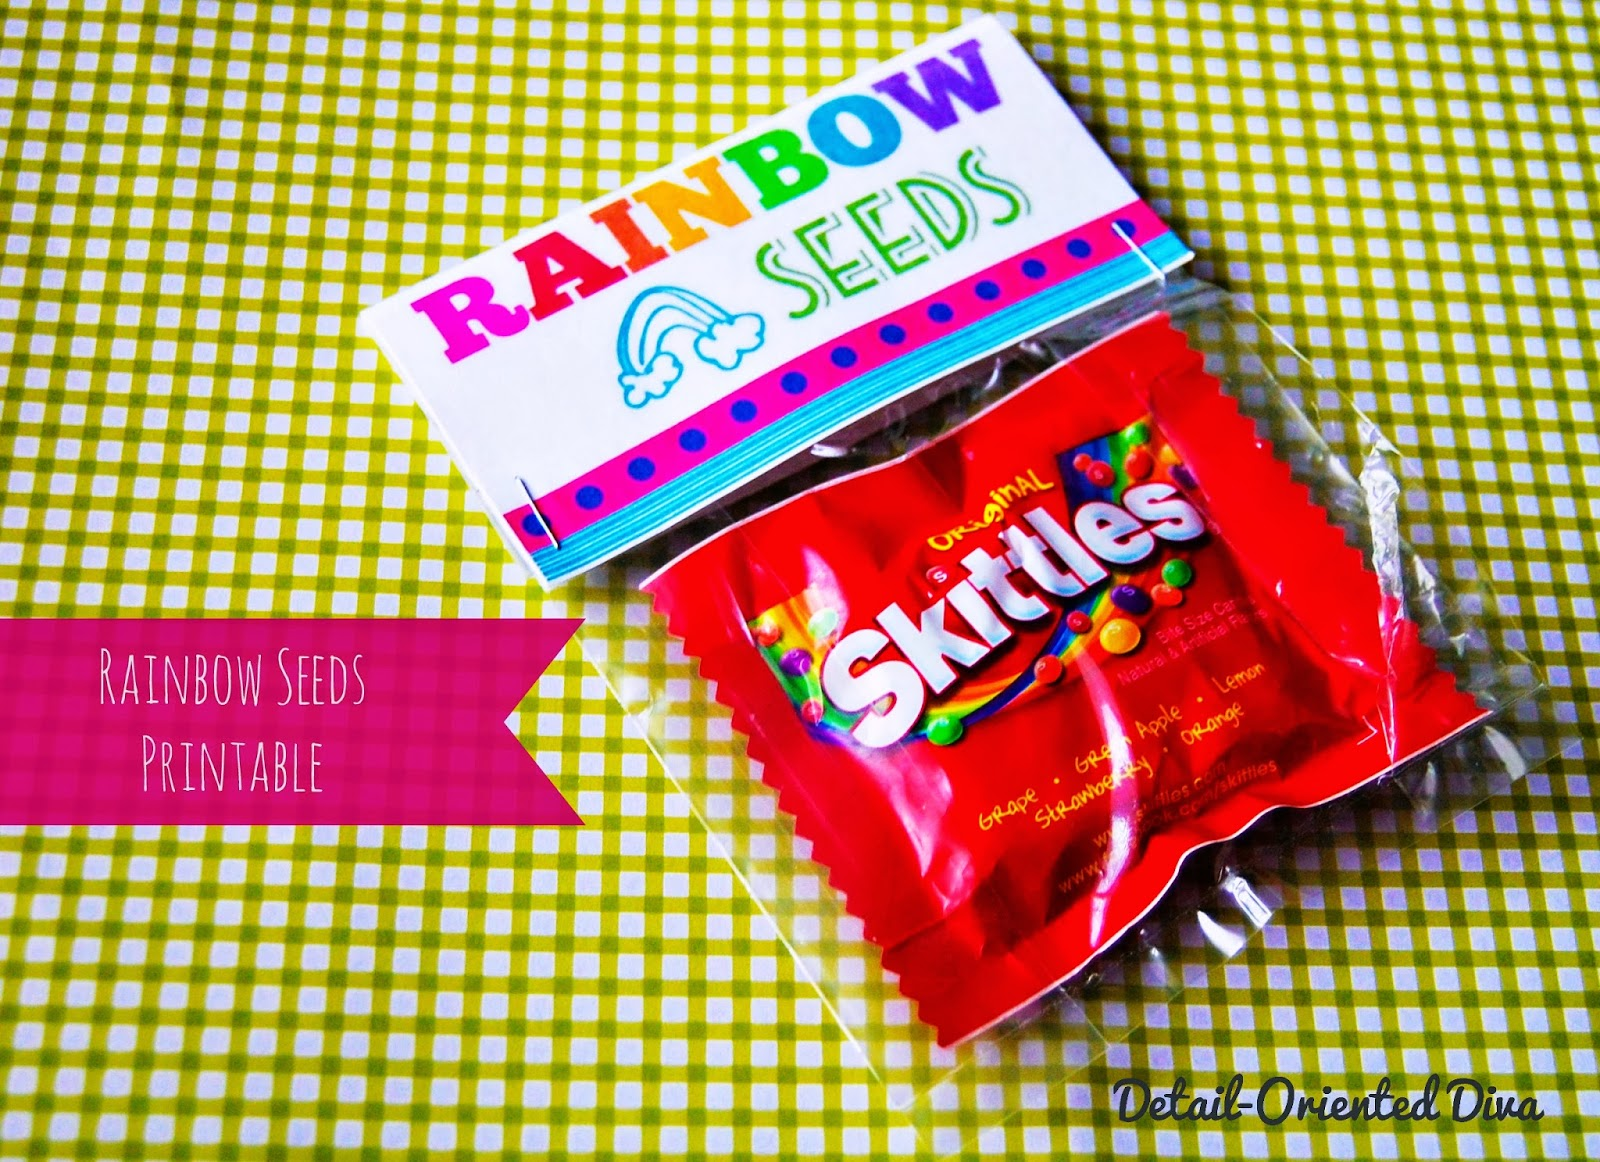 detail oriented diva rainbow seeds free printable